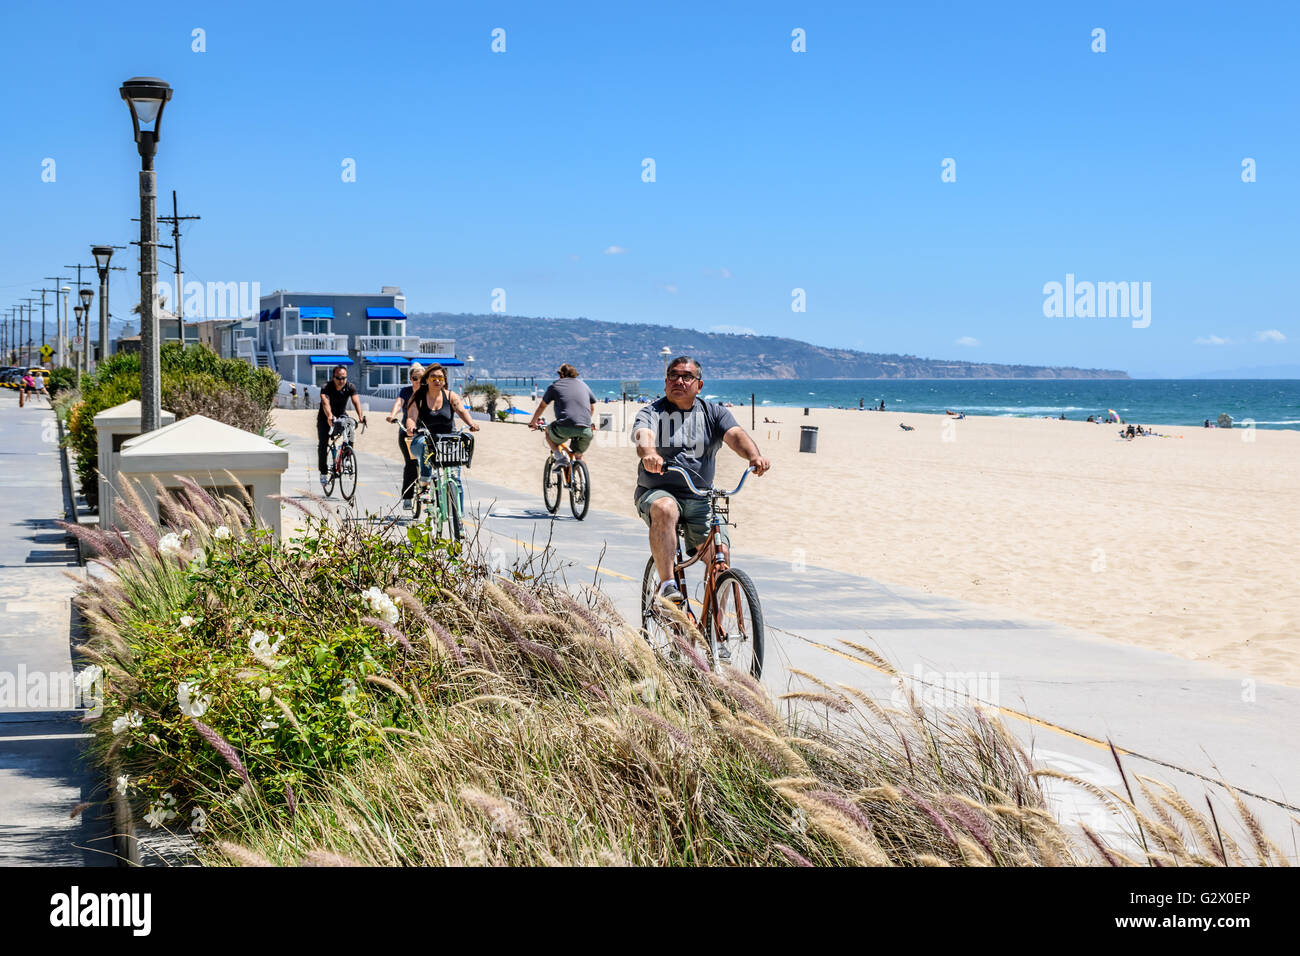 Recreation bicycle riders (cyclists) on the Manhattan Beach cycling path - Stock Image